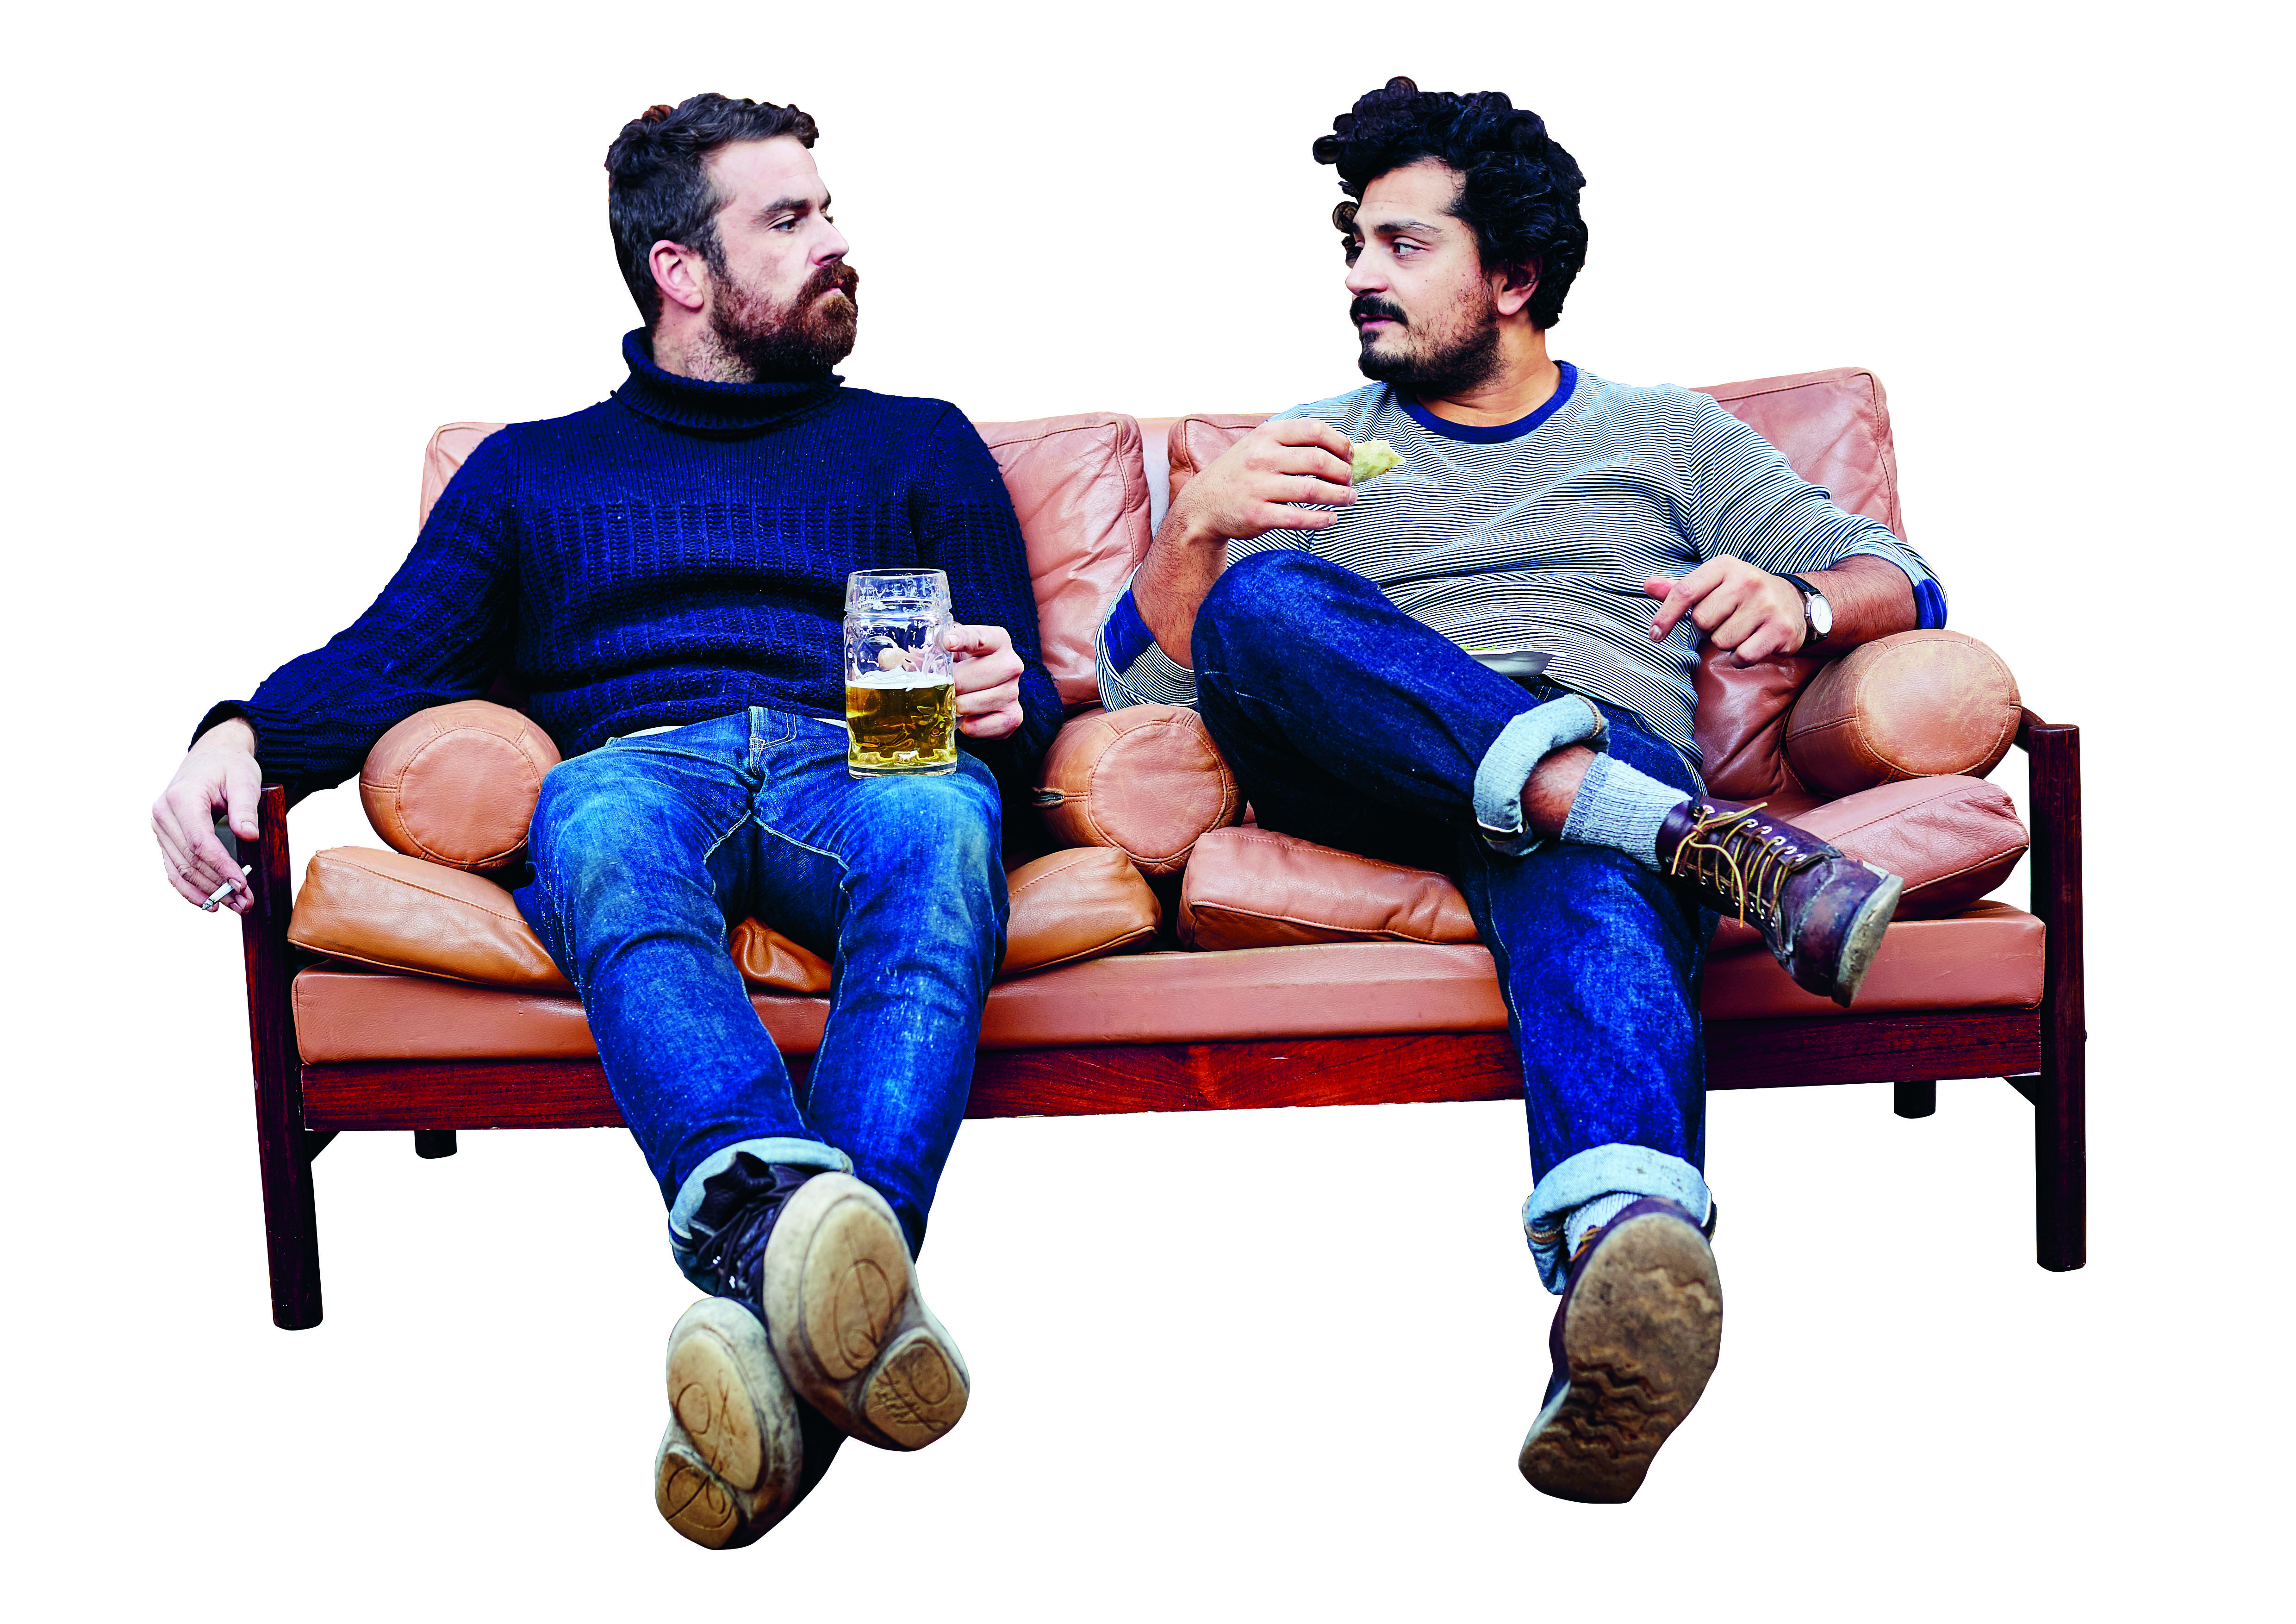 Chris Whitney and Nud Dudhia